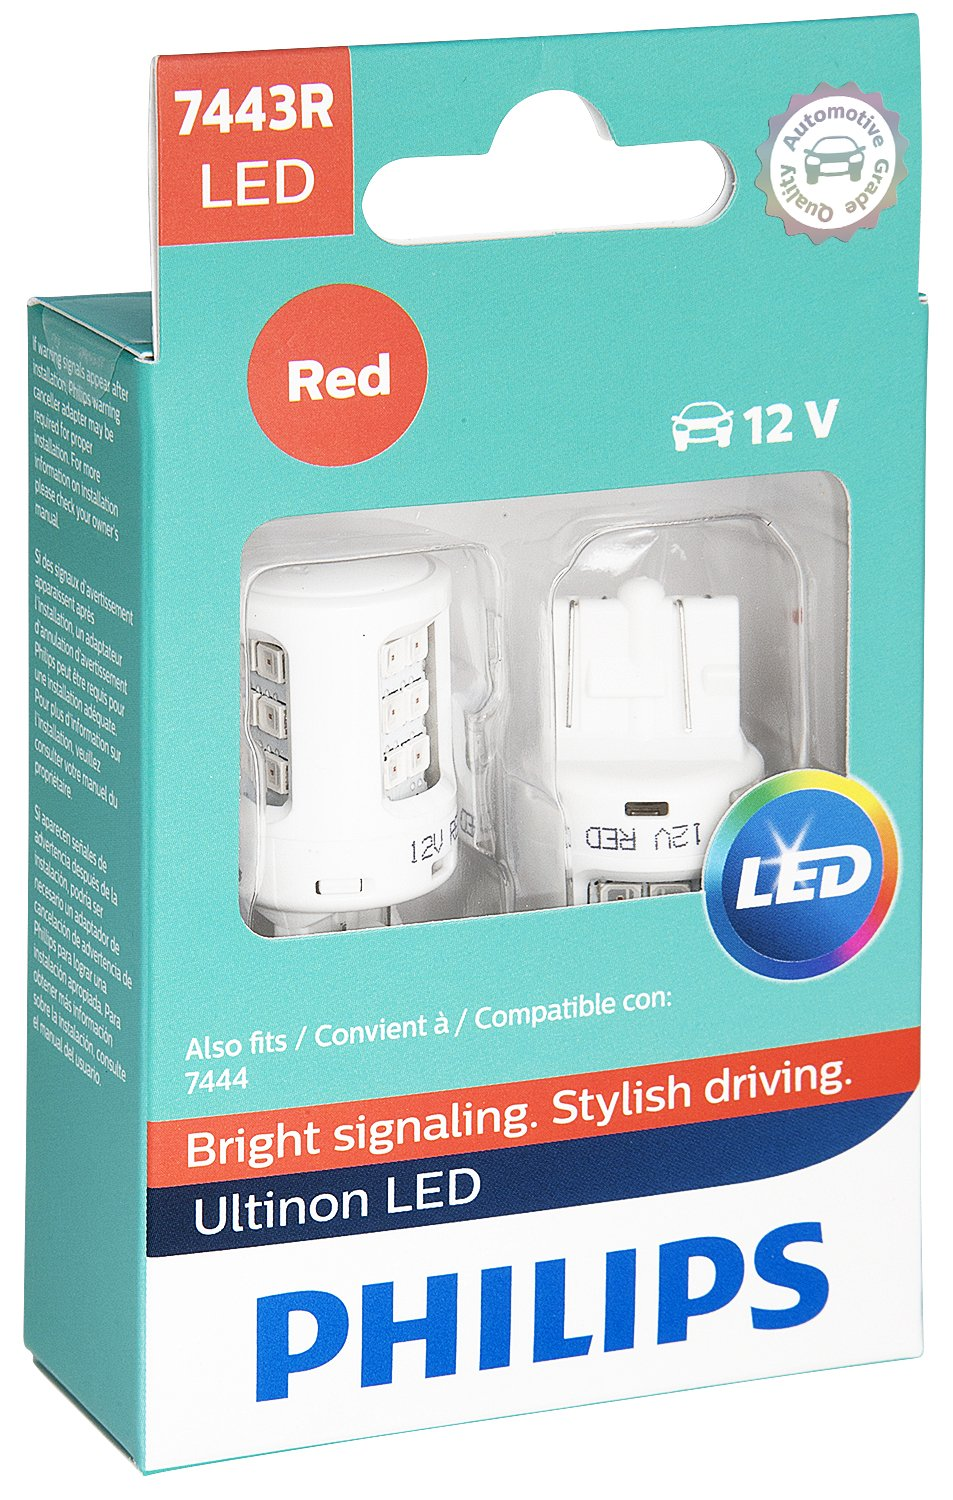 Philips 7443 Ultinon LED Bulb (Red), 2 Pack 7443RLED